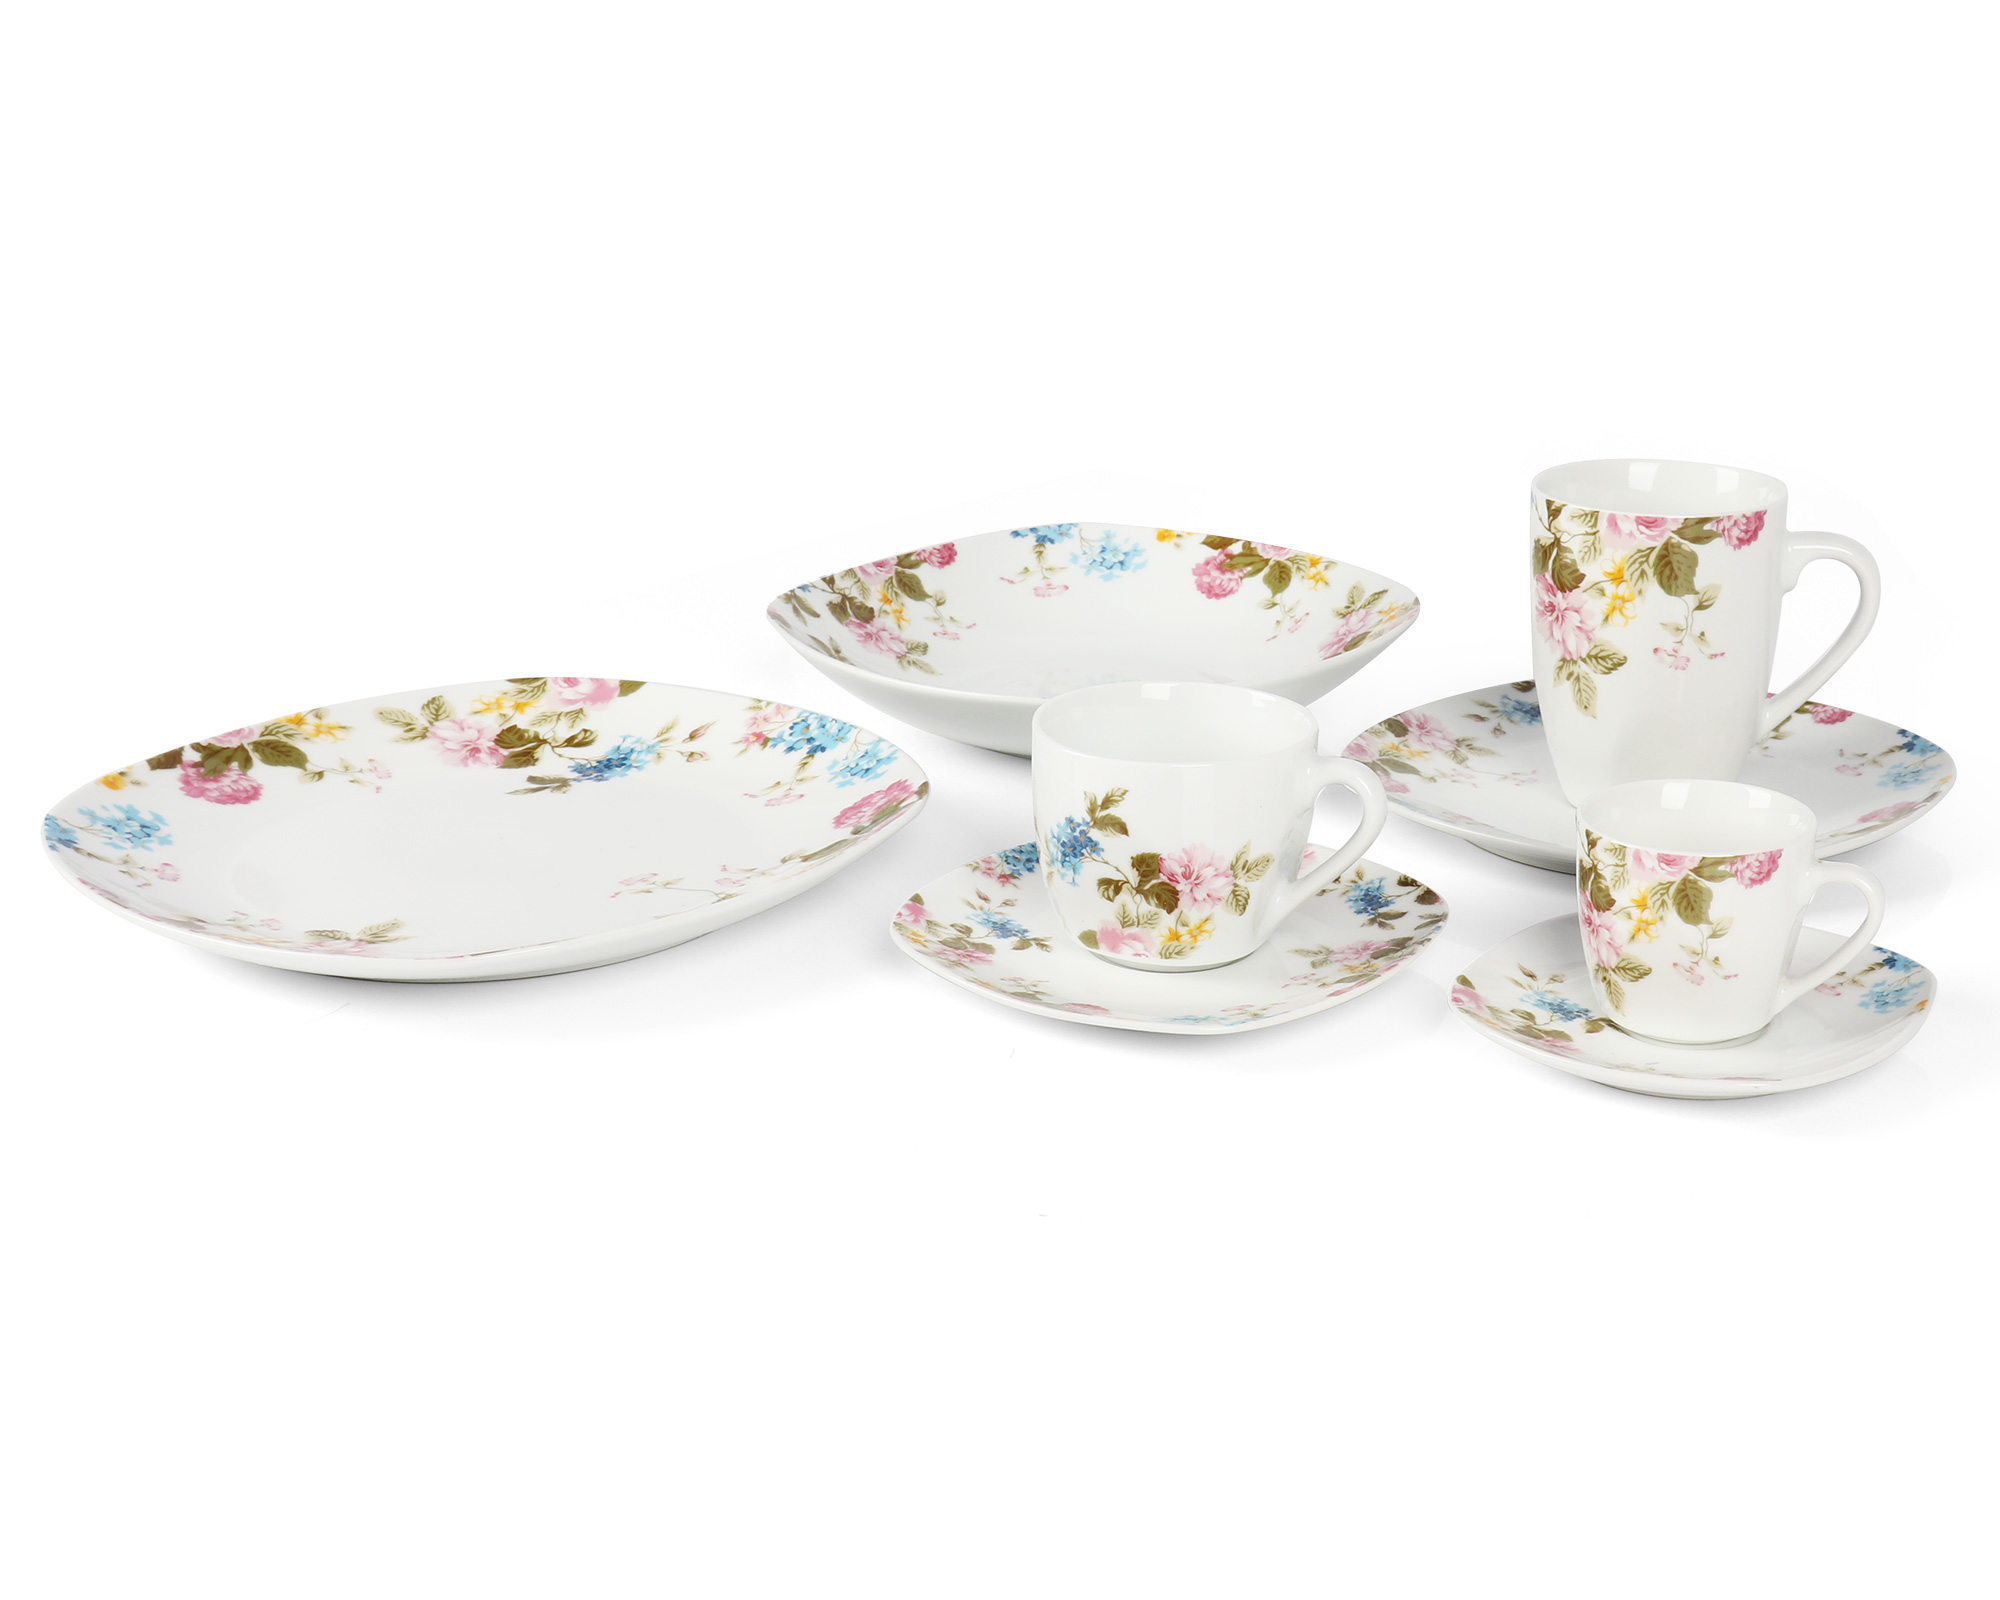 Porcelain tableware set 54pcs